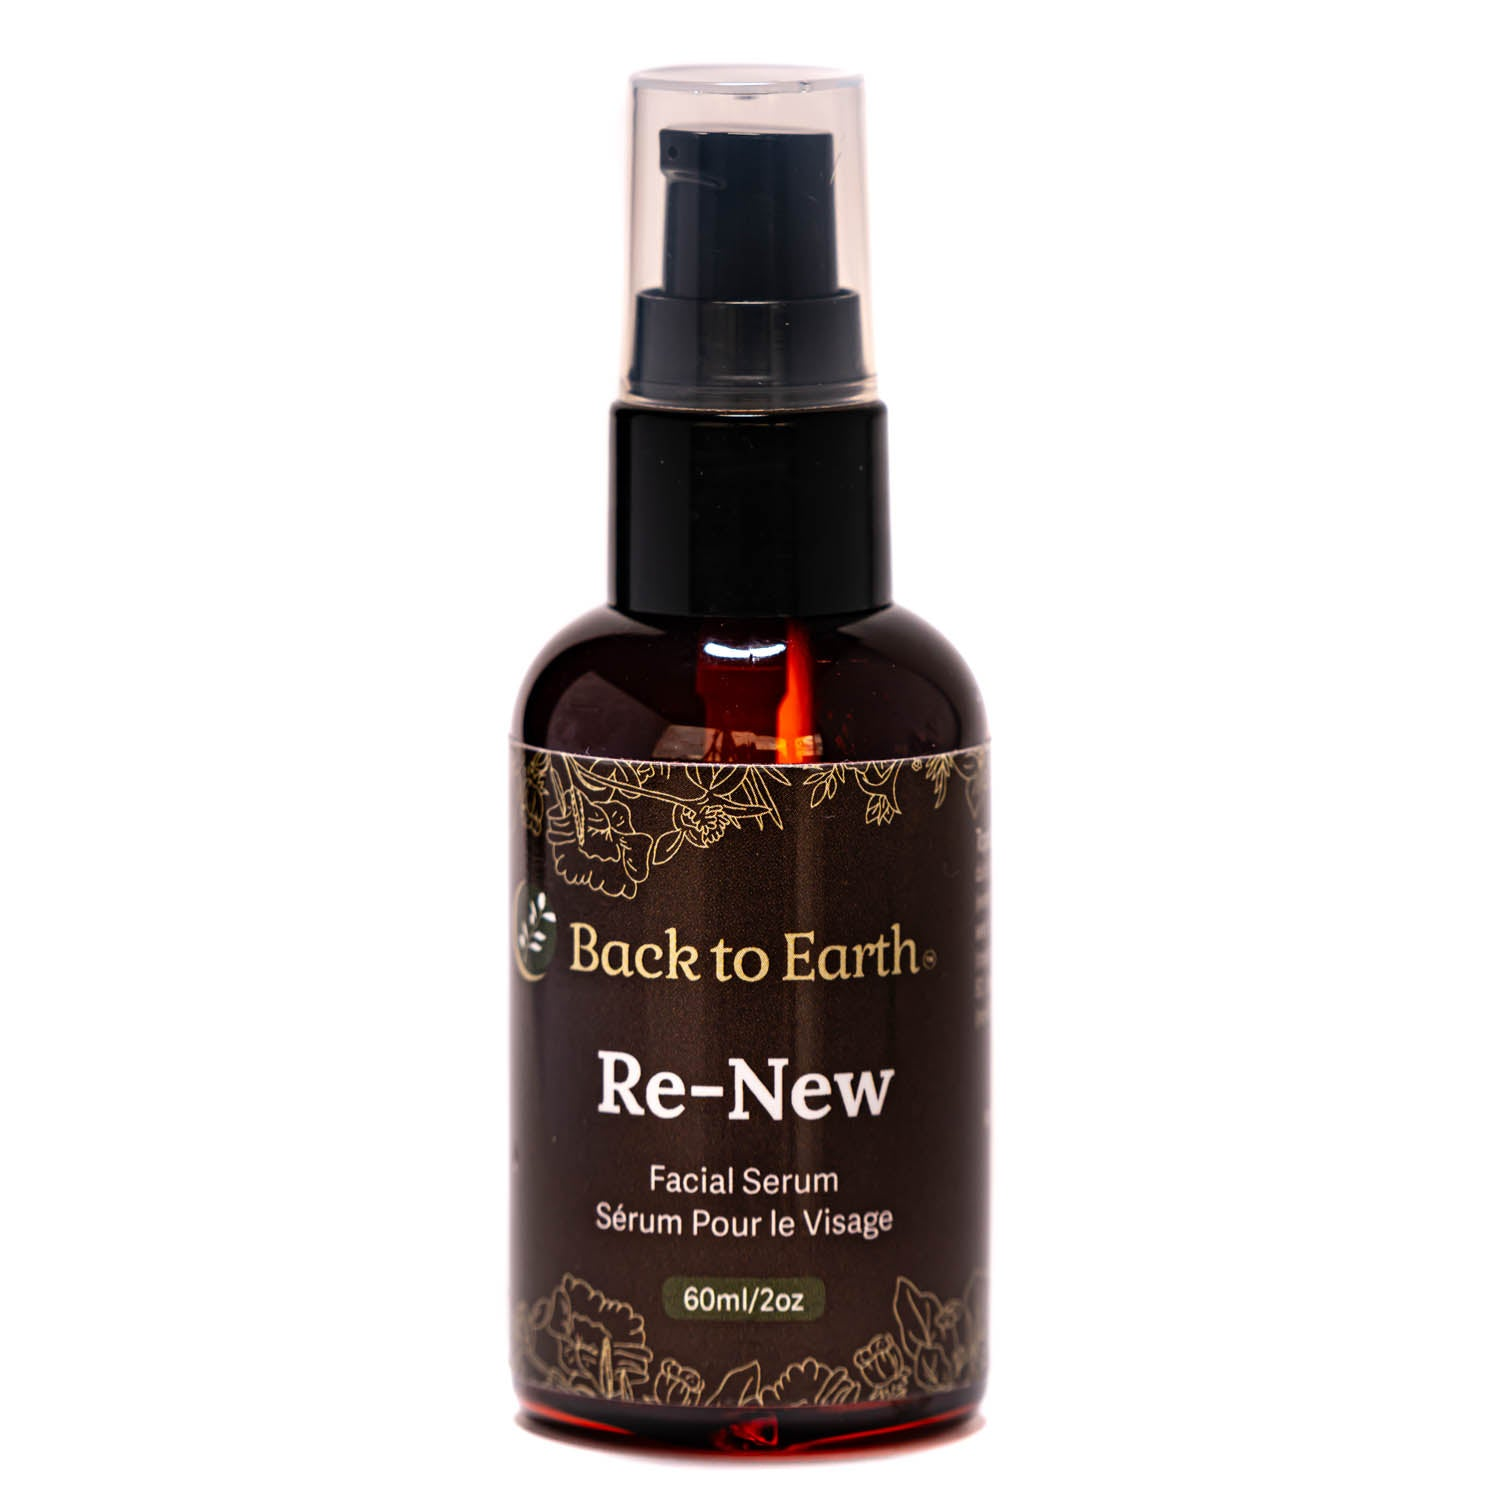 ReNew Facial Serum - 60ml/2oz